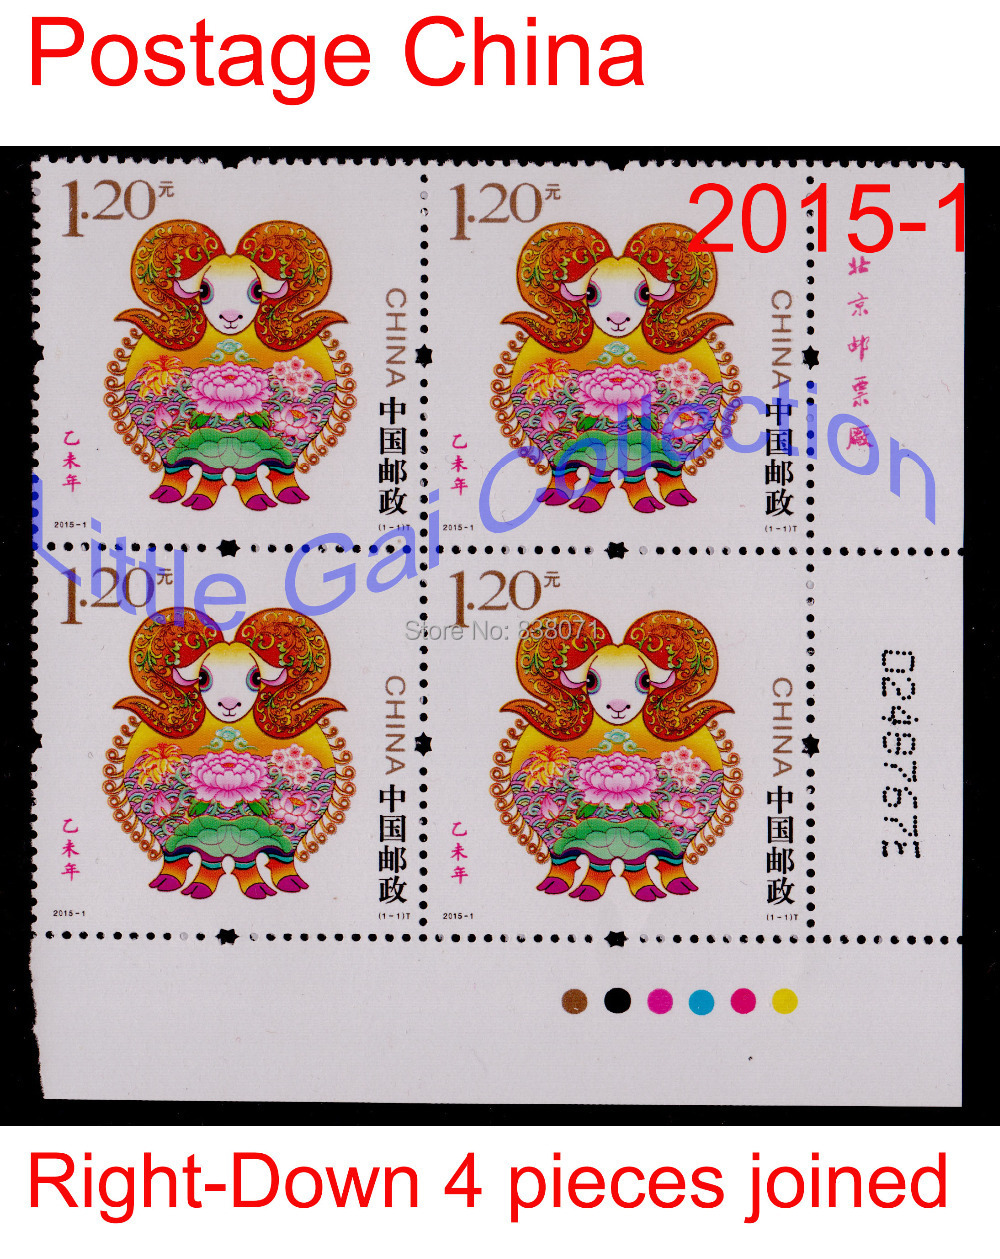 china post stamp 2015-1,the third Chinese zodiac stamps - sheep ,Right - down 4 pieces joined sheet ,postage collecting,souvenir 4pcs chinese acient tower postage stamps unused new no repeat non postmark published in china best stamps collecting